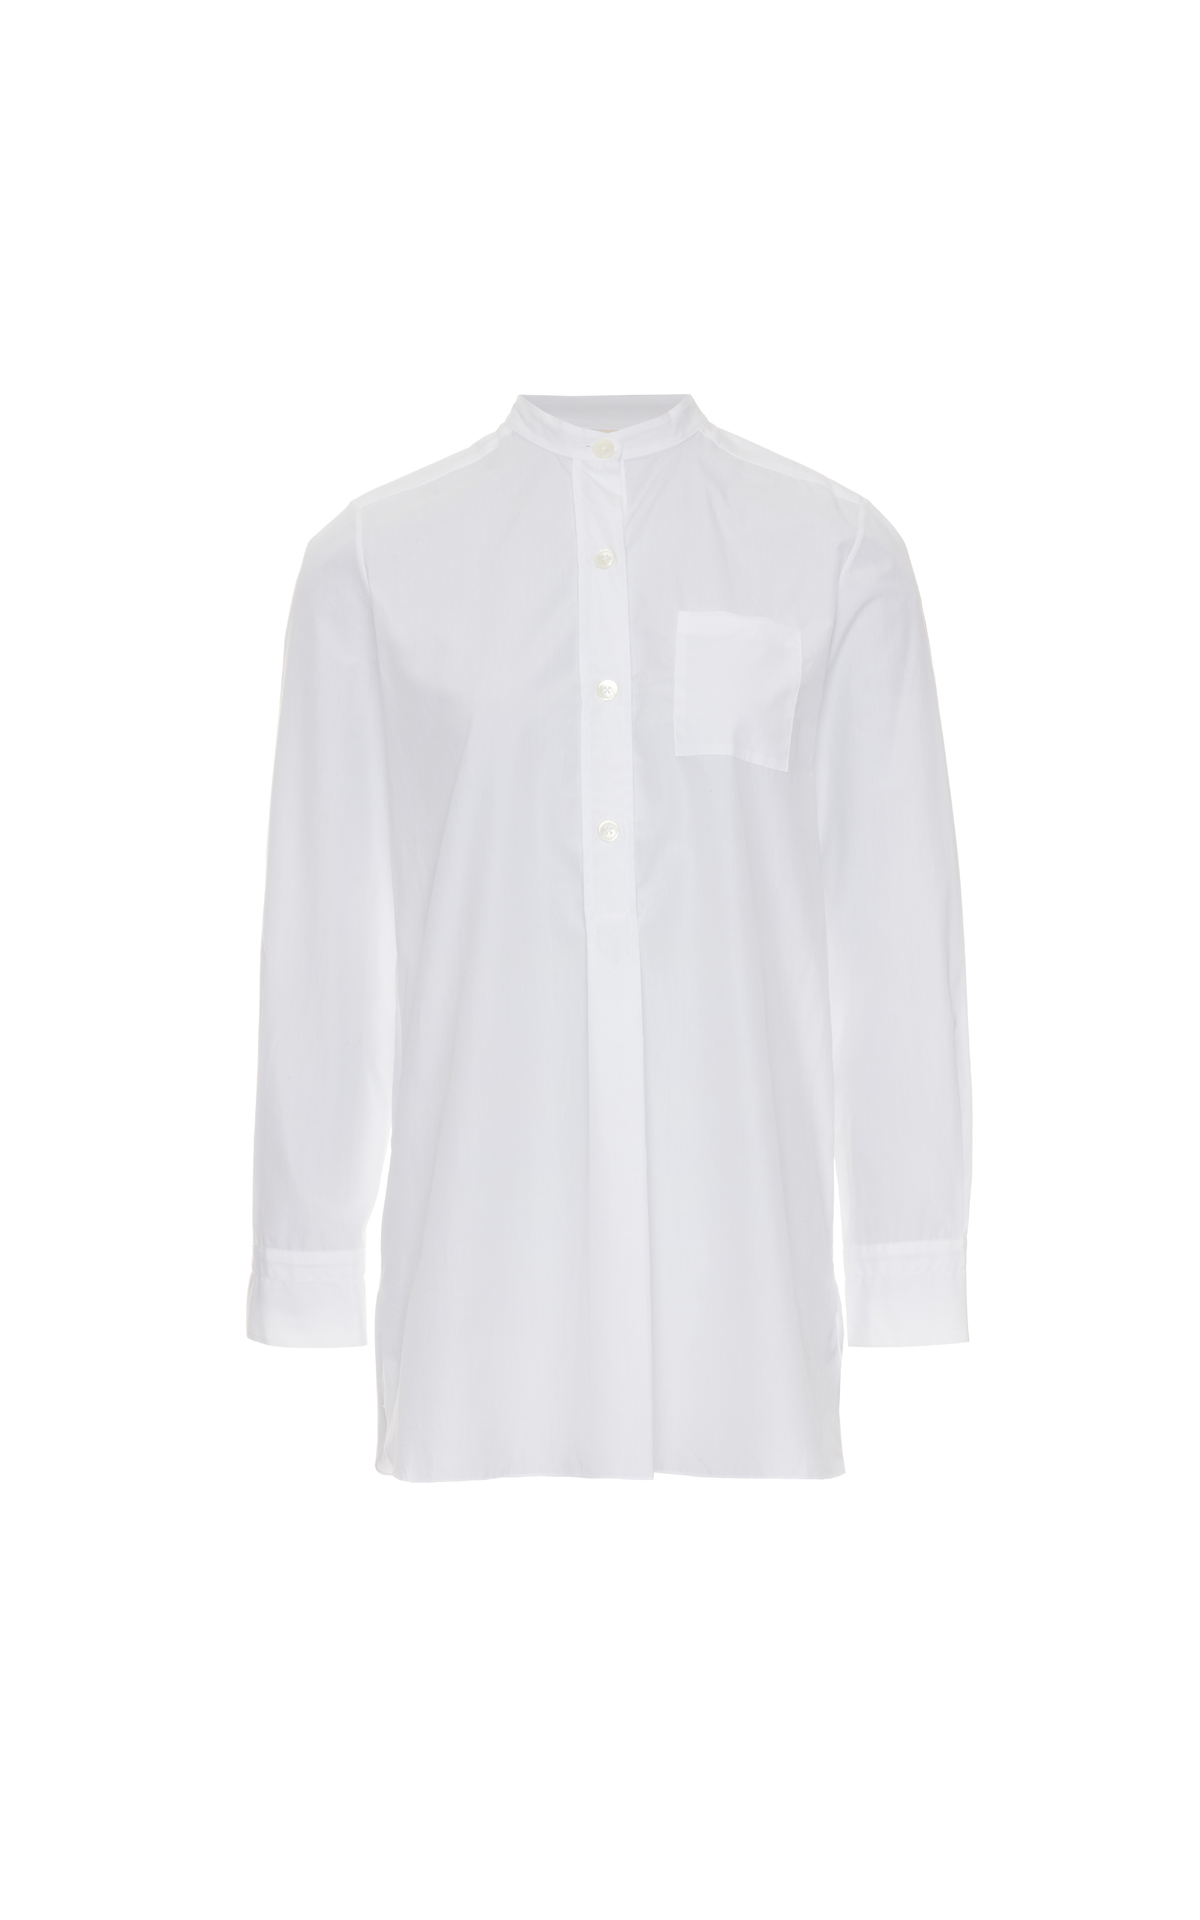 Marni Long sleeve blouse cotton poplin lily white from Bicester Village